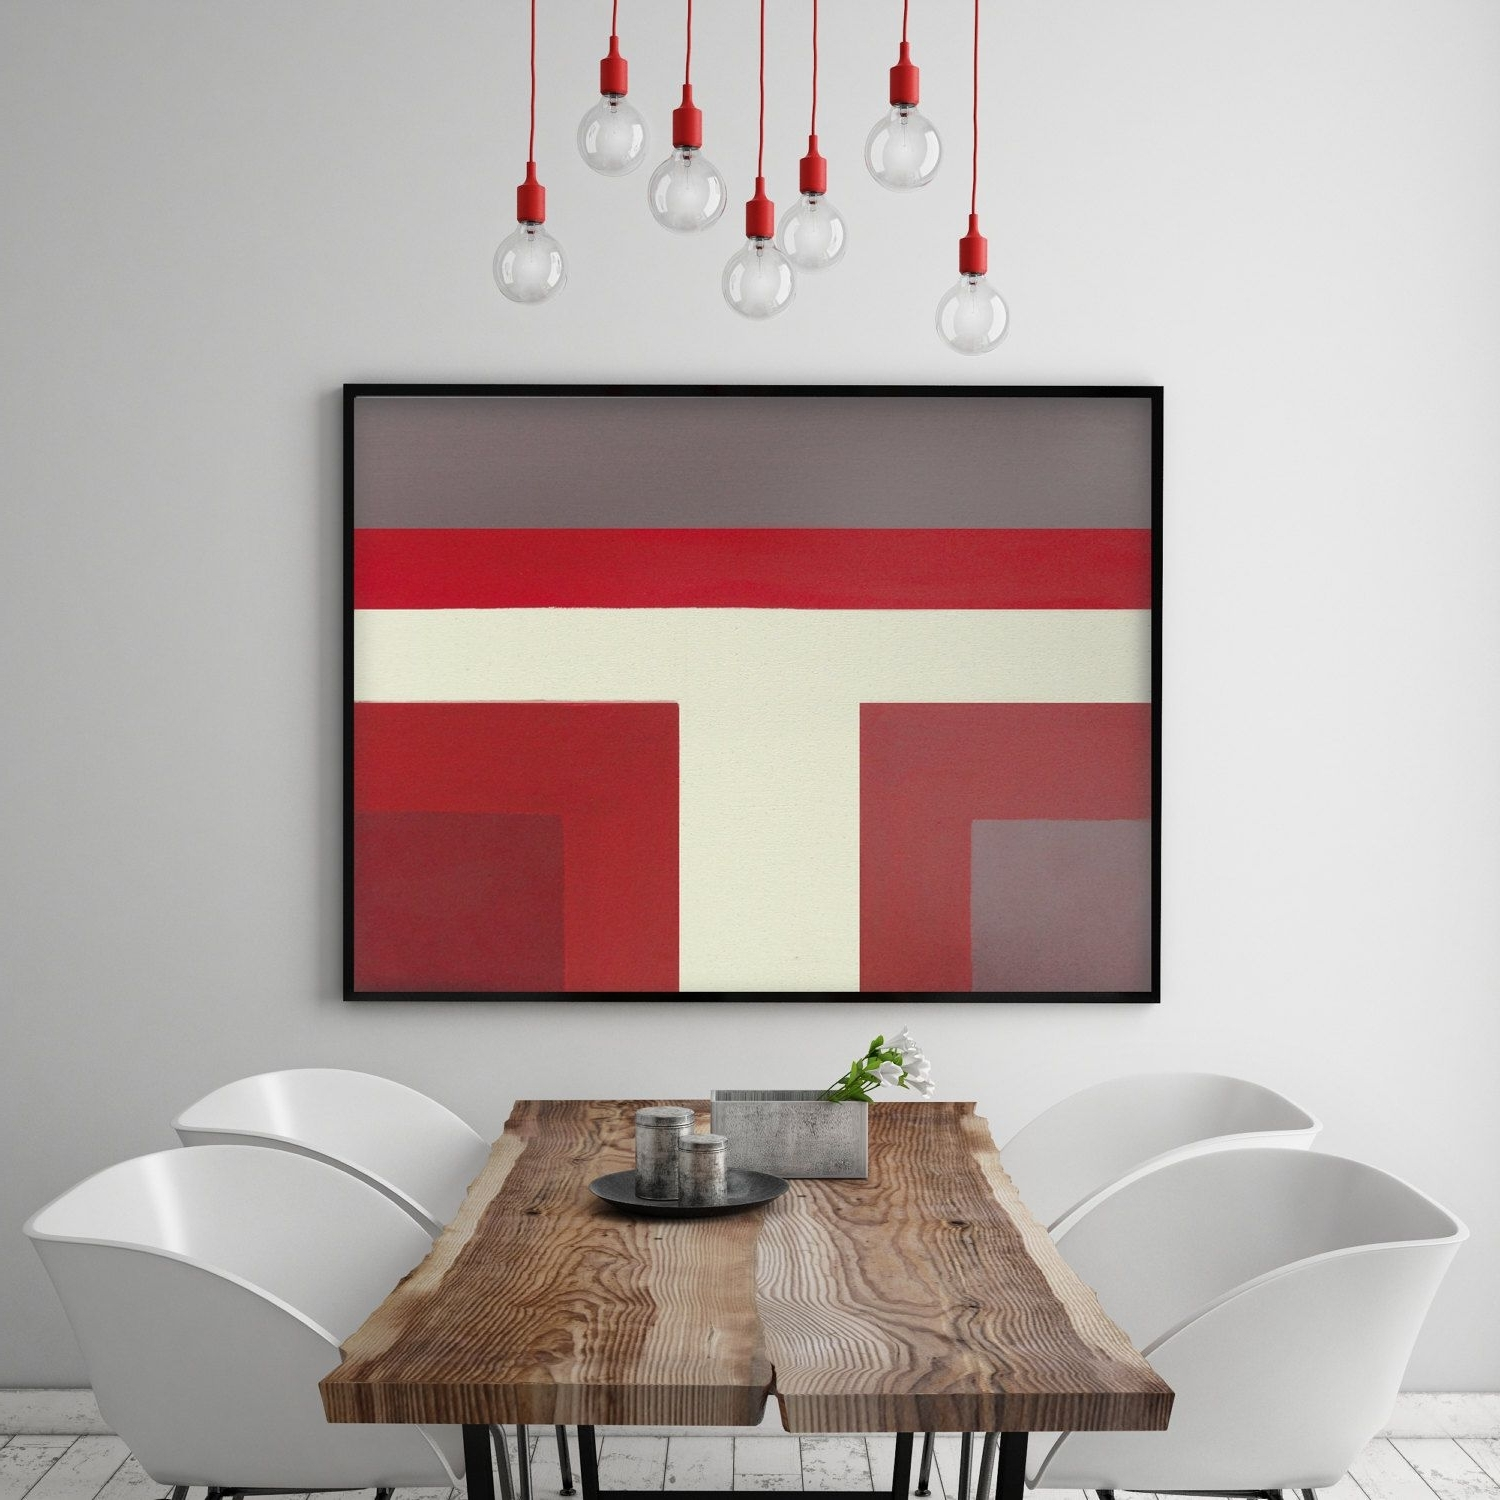 Widely Used Red Modern Abstract Color Block Painting Burgundy Maroon White Gray Inside Burgundy Wall Art (View 15 of 15)